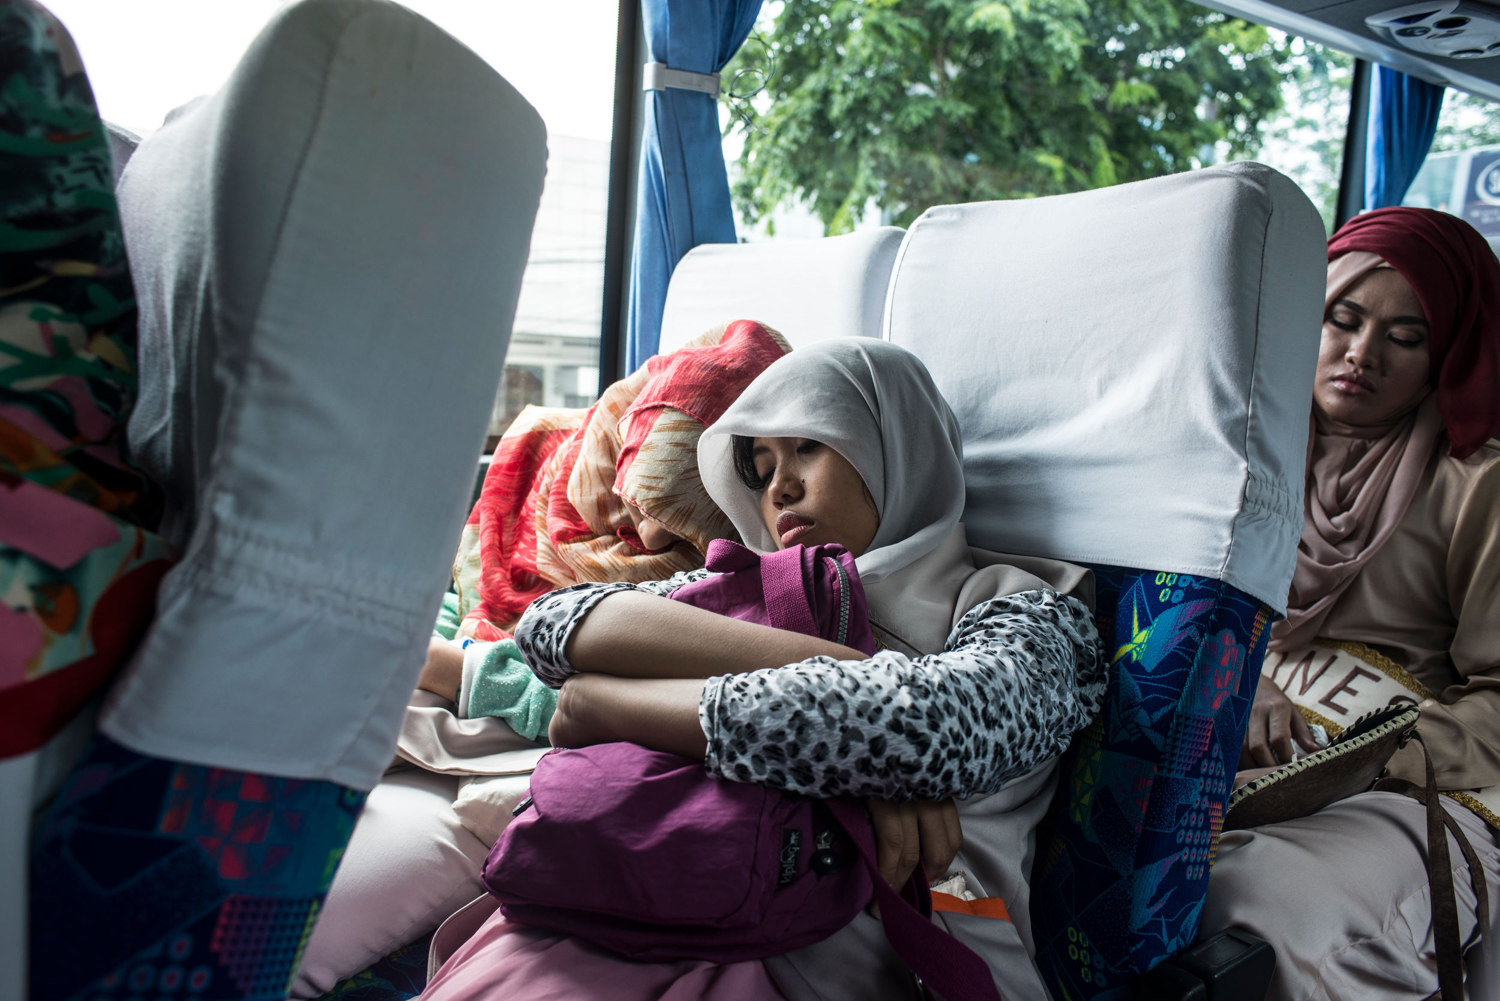 Two LO's or Logistic officers, who are each assigned to a girl as a defacto babysitter, sleep on the bus between events.